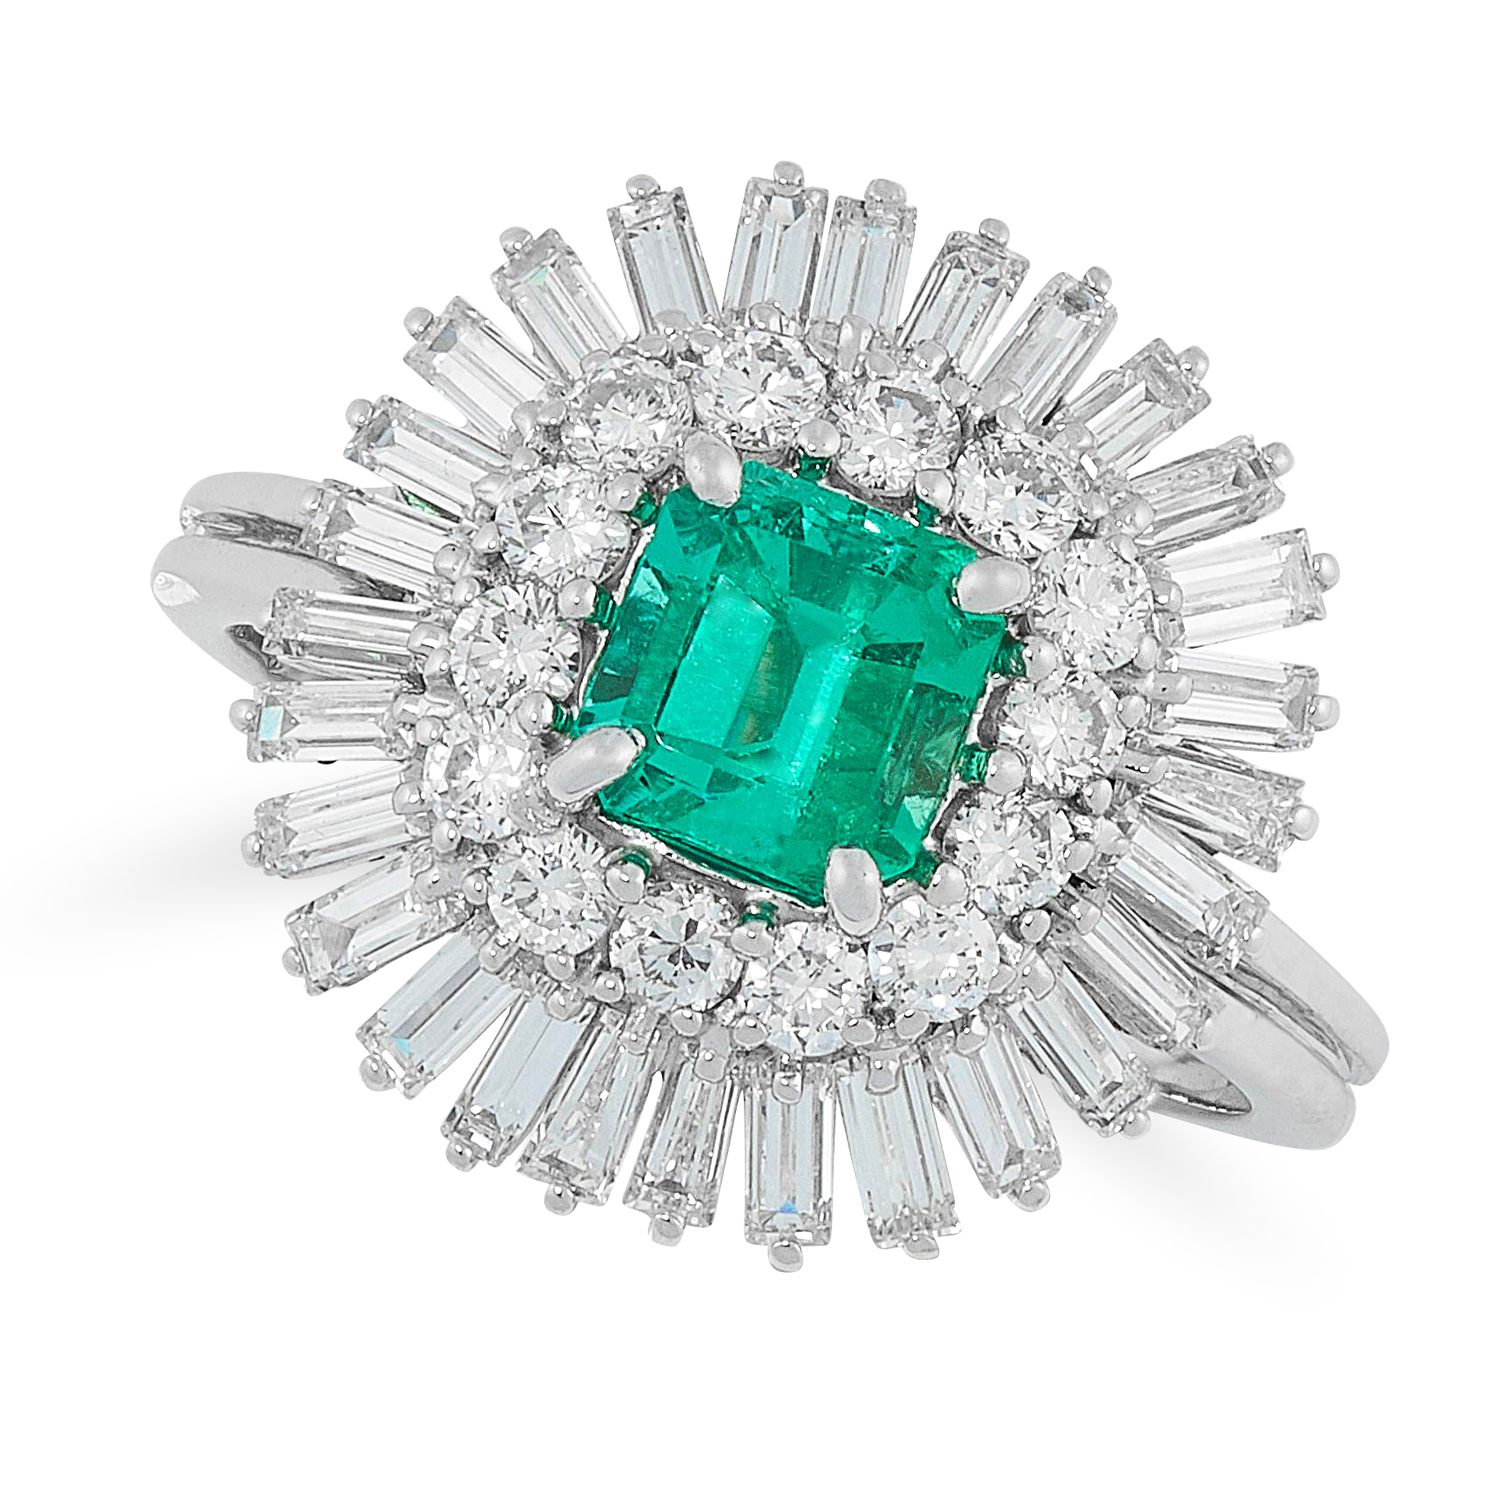 AN EMERALD AND DIAMOND CLUSTER RING comprising of an emerald cut emerald of 0.95 carats in a